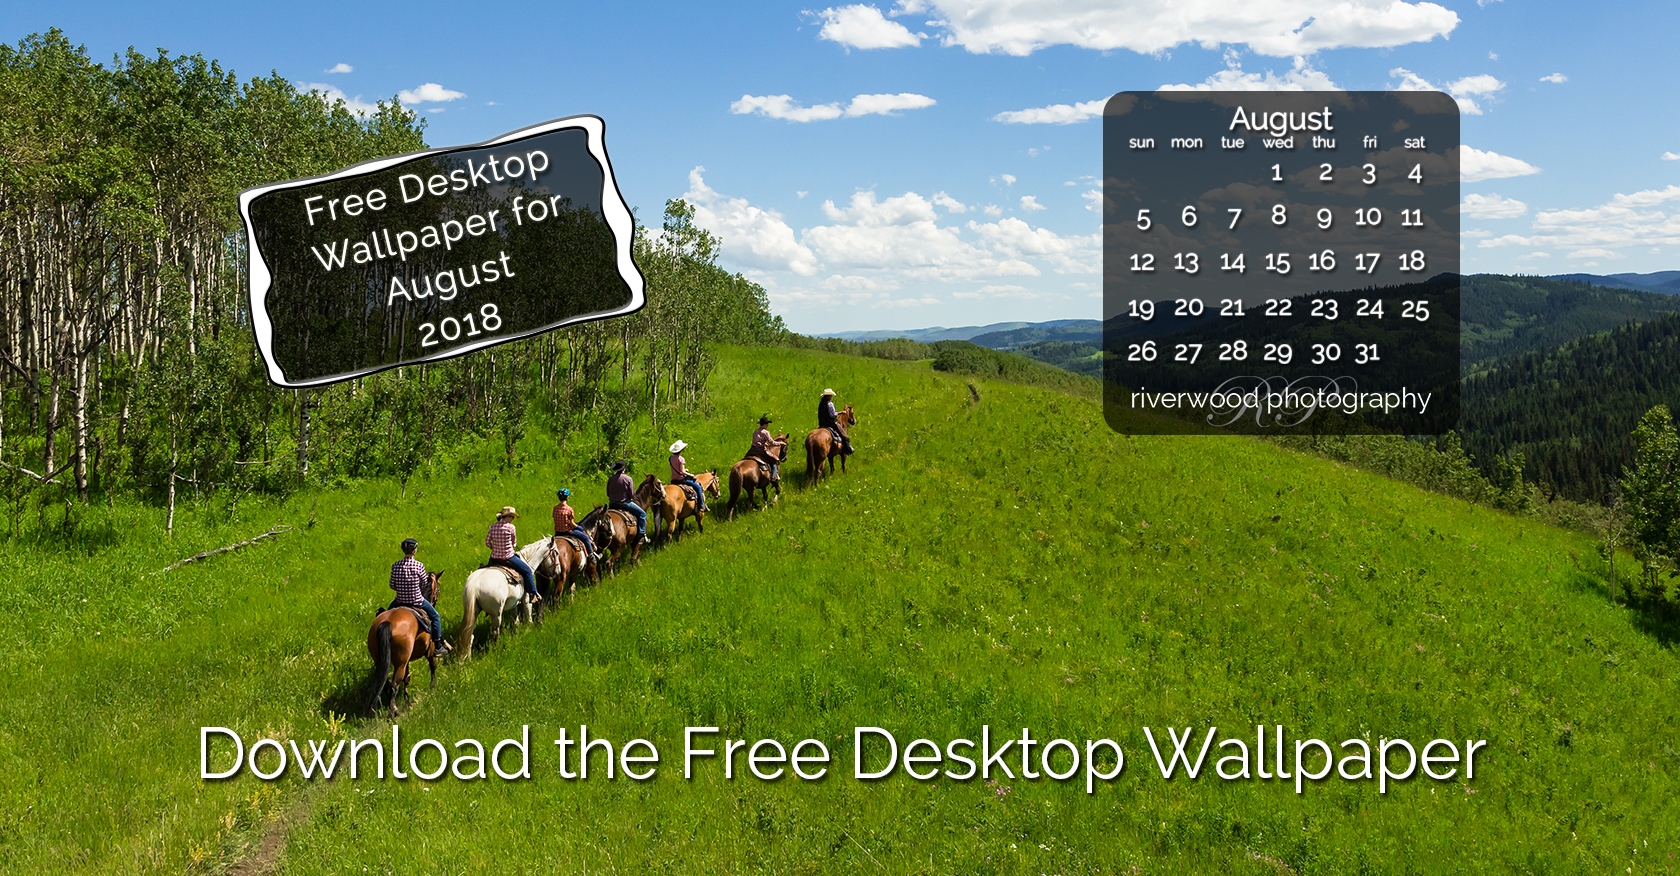 Free Desktop Wallpaper for August 2018 – Trail Riding in Kananaskis Country